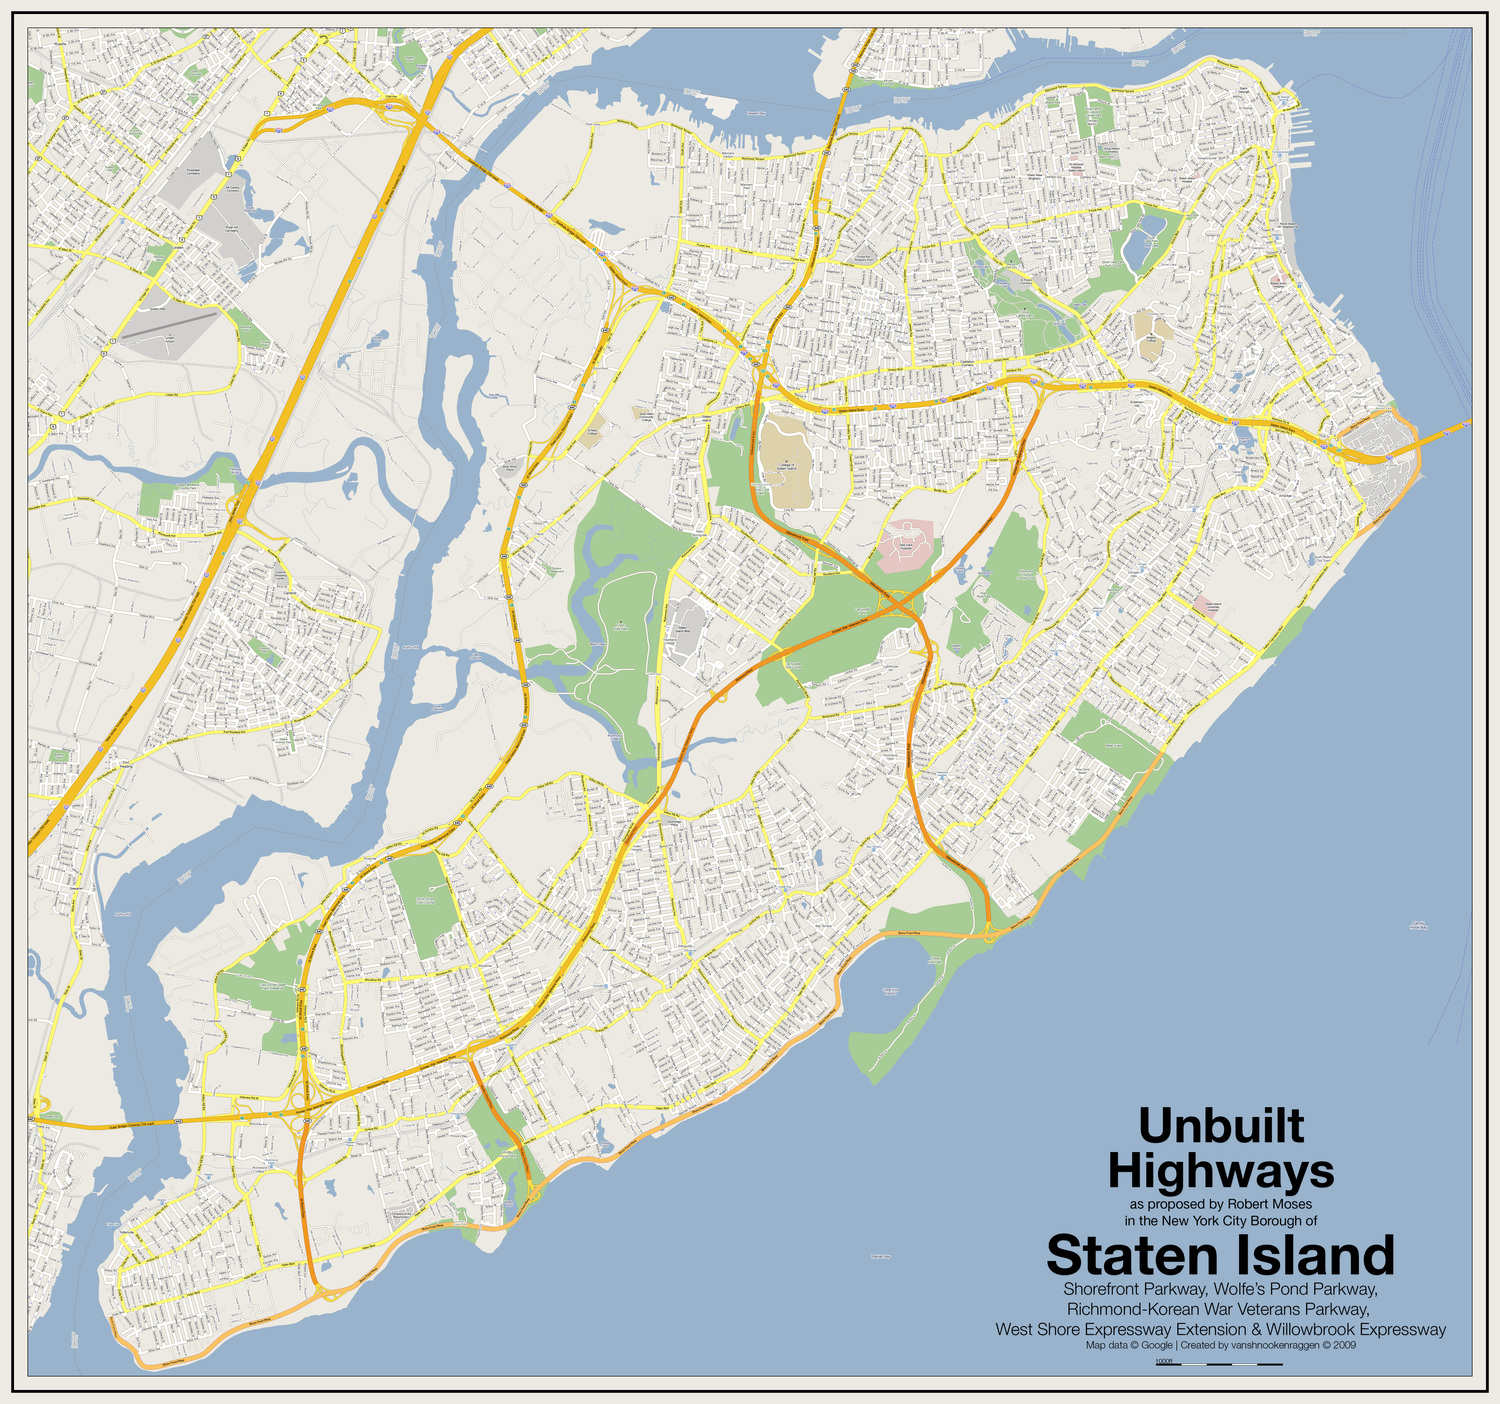 Unbuilt Highways of Staten Island | Unbuilt Highways as proposed by Robert Moses in the New York City Borough of Staten Island: Shorefront Parkway, Wolfe's Pond Parkway, Richmond-Korean War Veterans Parkway, West Shore Expressway Extension & Willowbrook Expressway  Map data © Google | Created by vanshnookenraggen © 2009